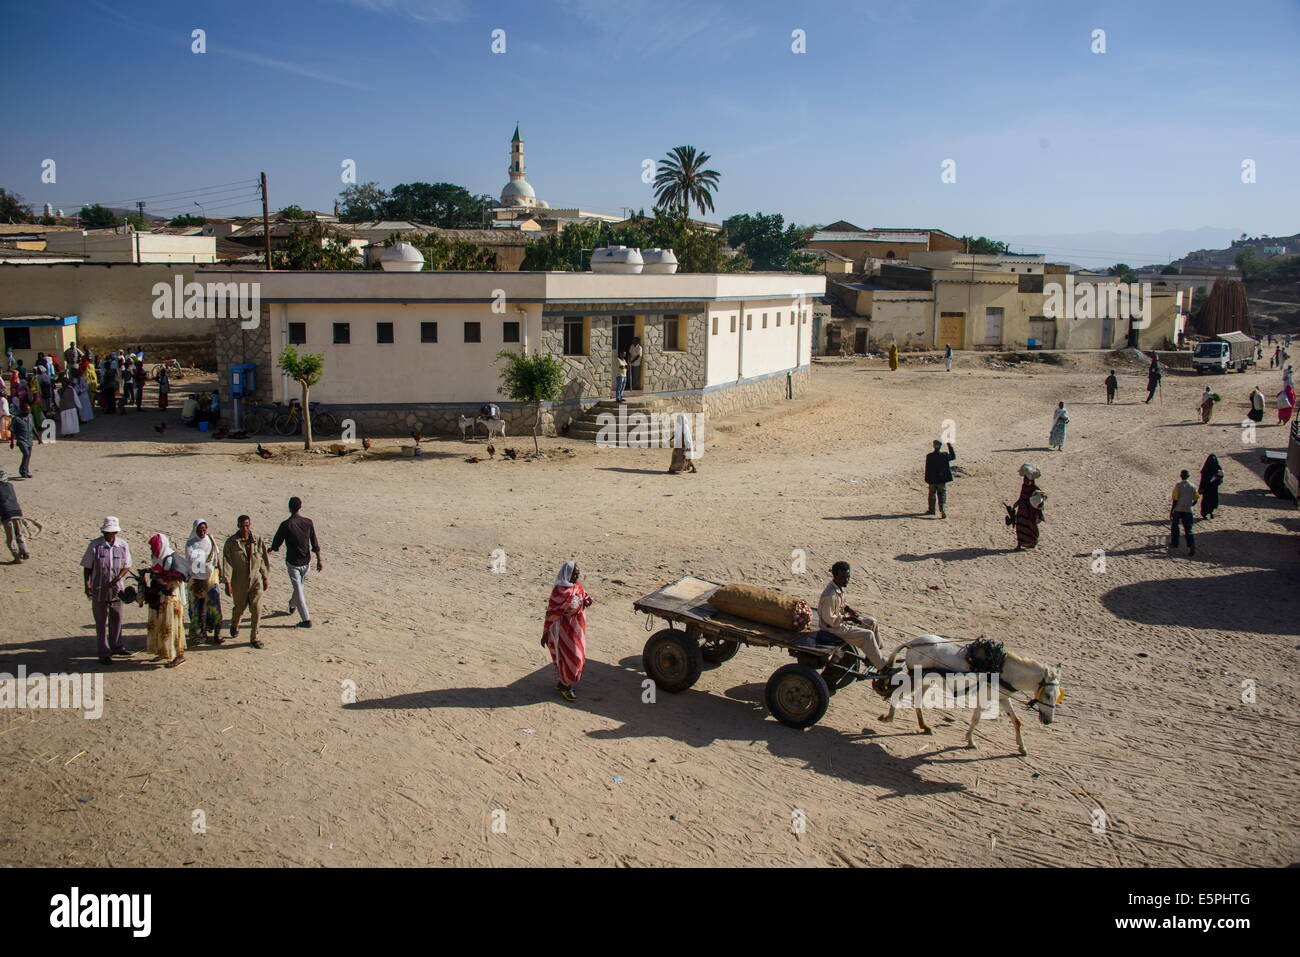 Horse cart at the Monday market of Keren, Eritrea, Africa - Stock Image